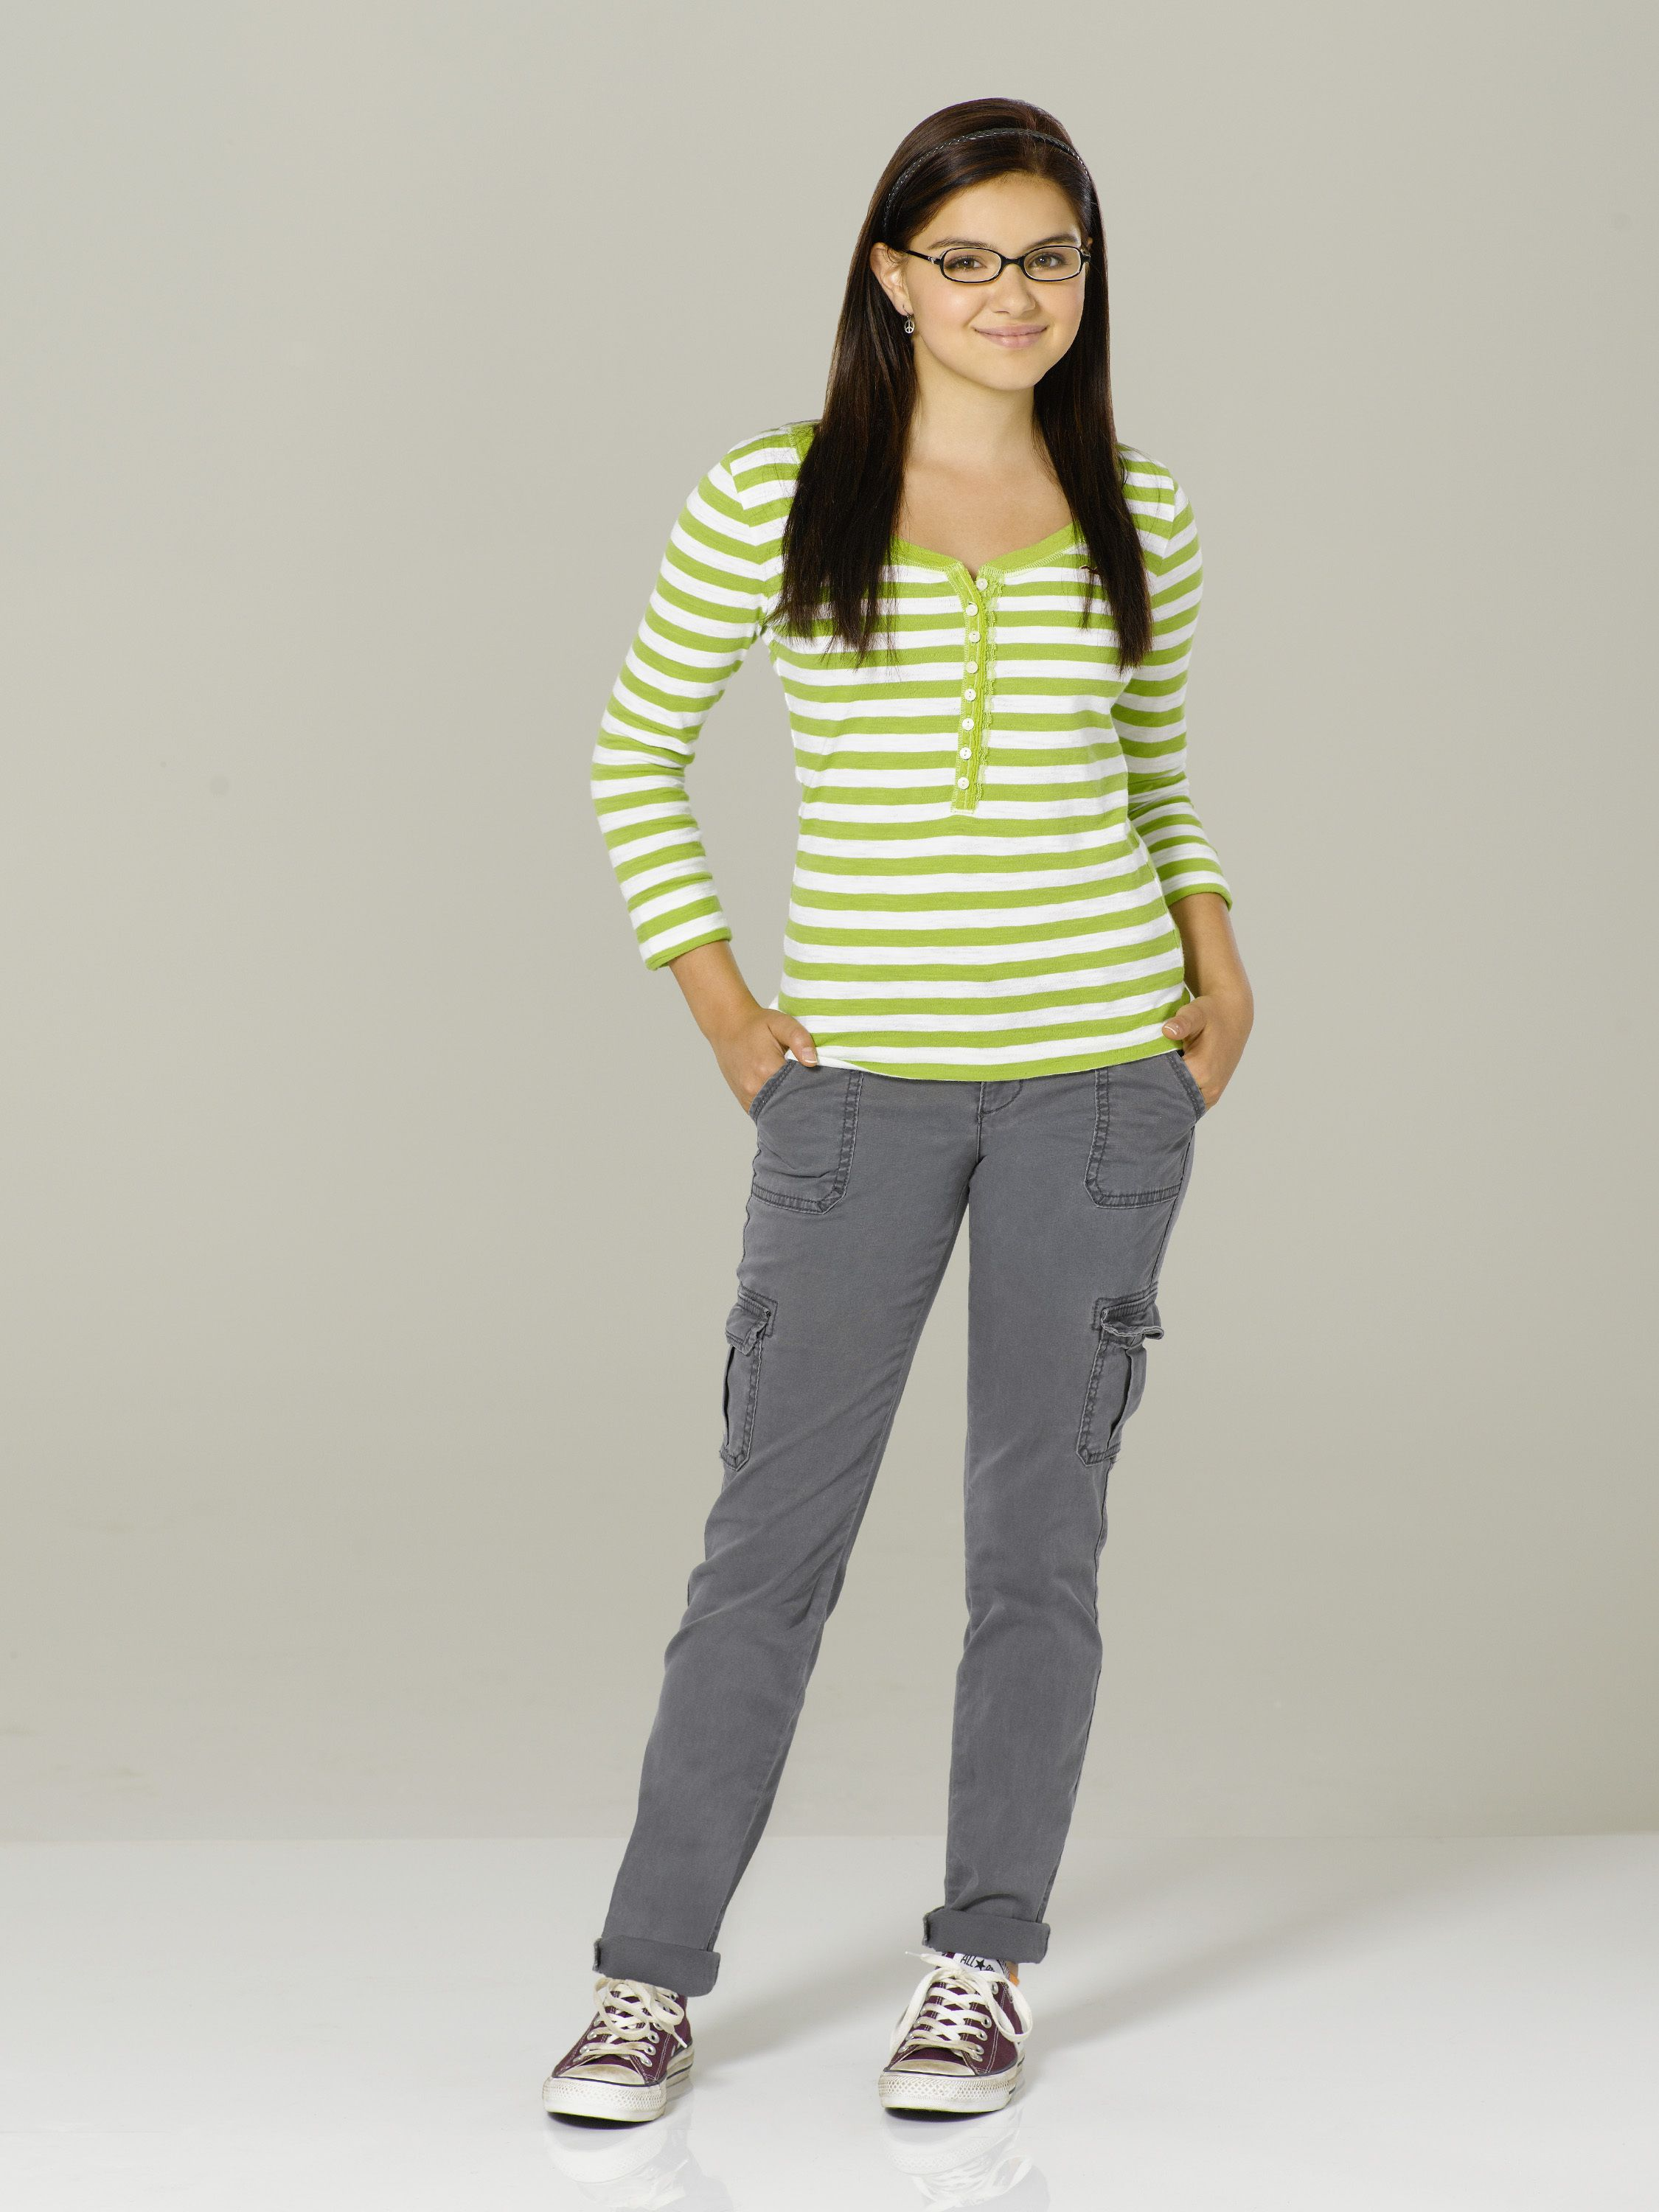 Ariel Winter As Alex Dunphy In Modernfamily Season 3 Ariel Winter Modern Family Ariel Winter Ariel Winter Young